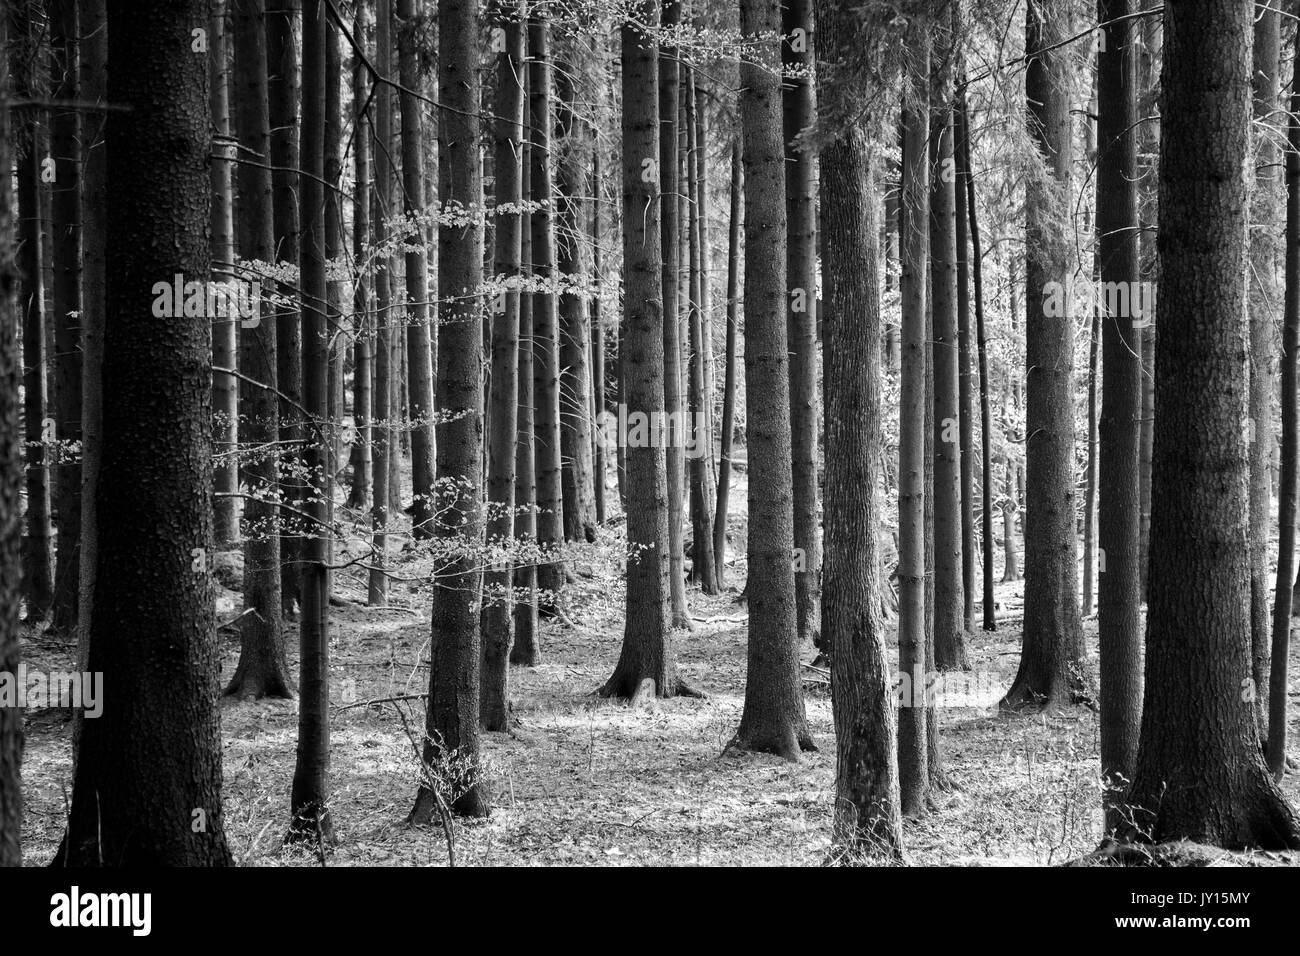 Scary forest of pines - Stock Image